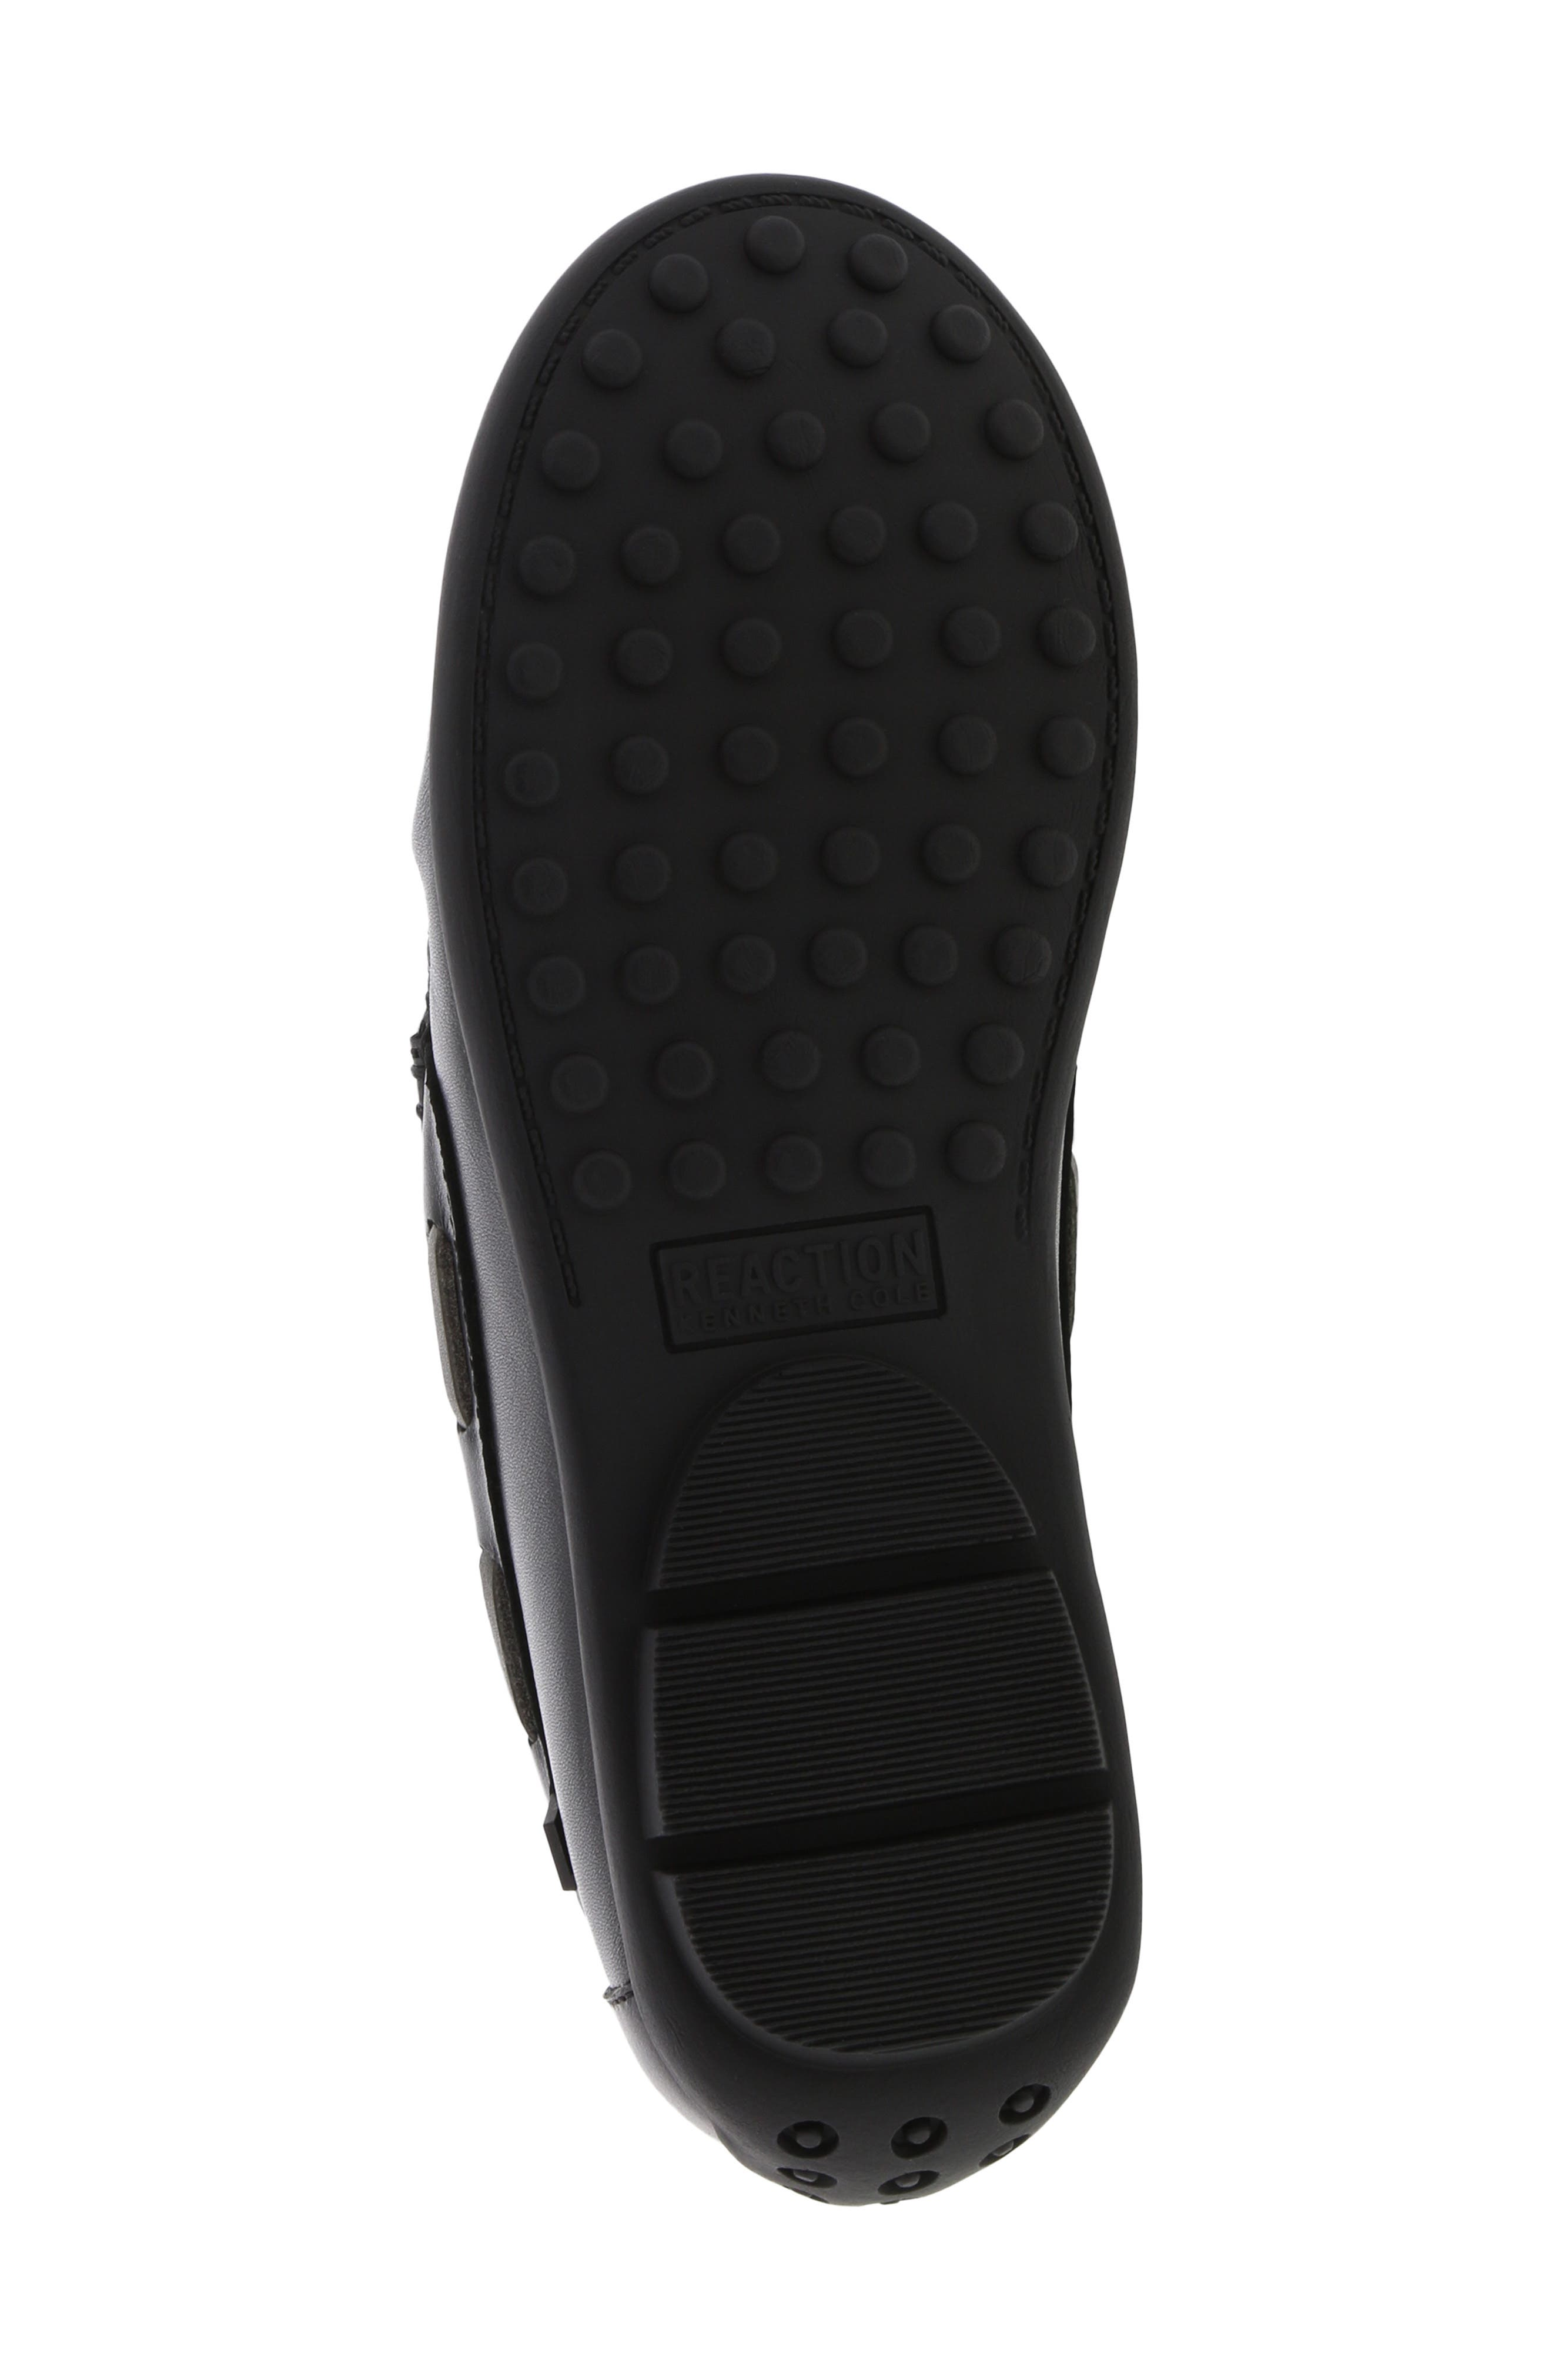 REACTION KENNETH COLE, Helio Shift Driving Moccasin, Alternate thumbnail 6, color, BLACK SMOOTH